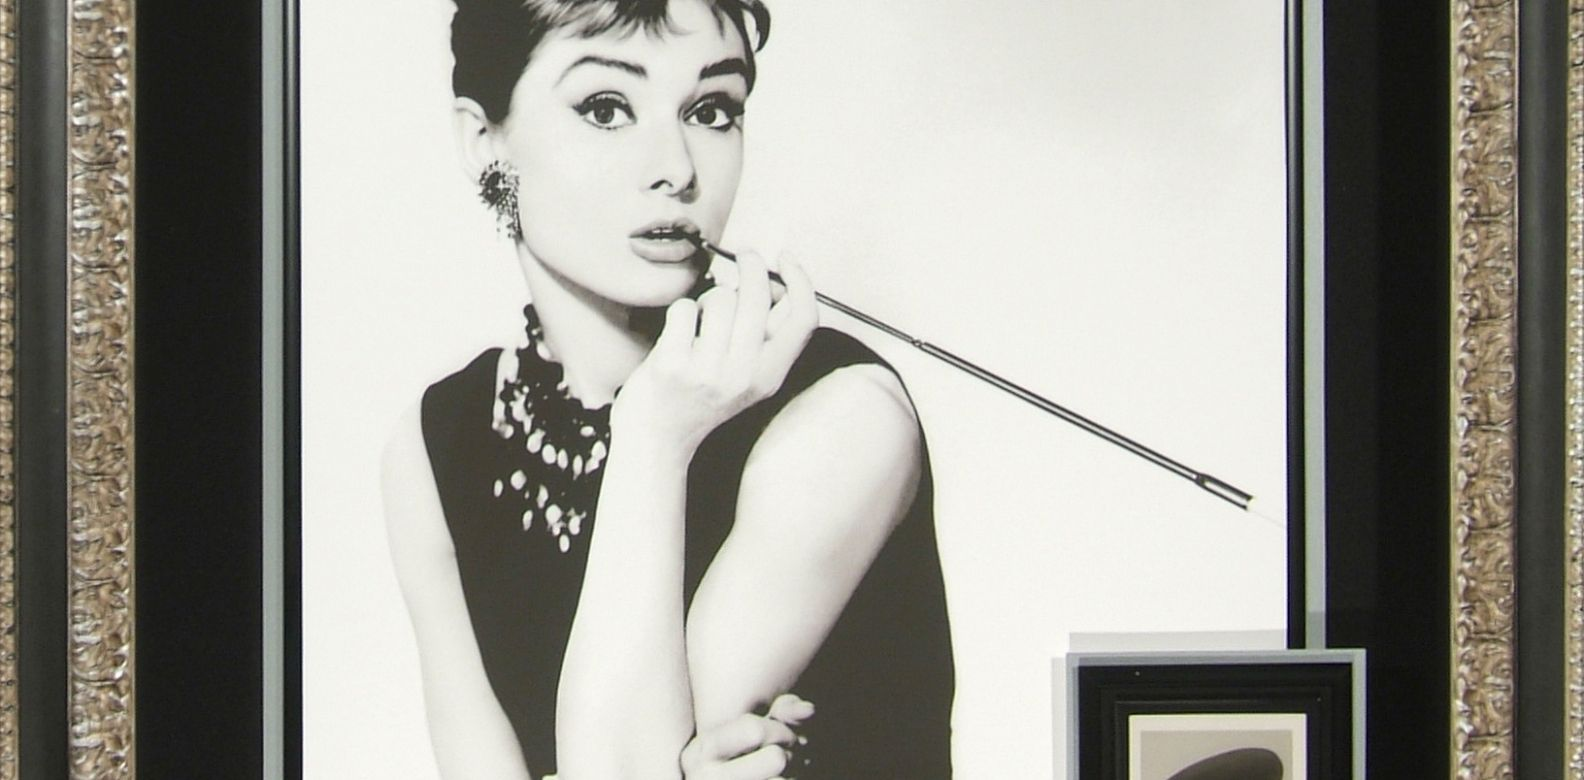 Audrey Hepburn - Exceedingly Rare Vintage Signed Portrait atop a Photo by Bud Fraker (Photo: Courtesy of Areteos Historical Concept)